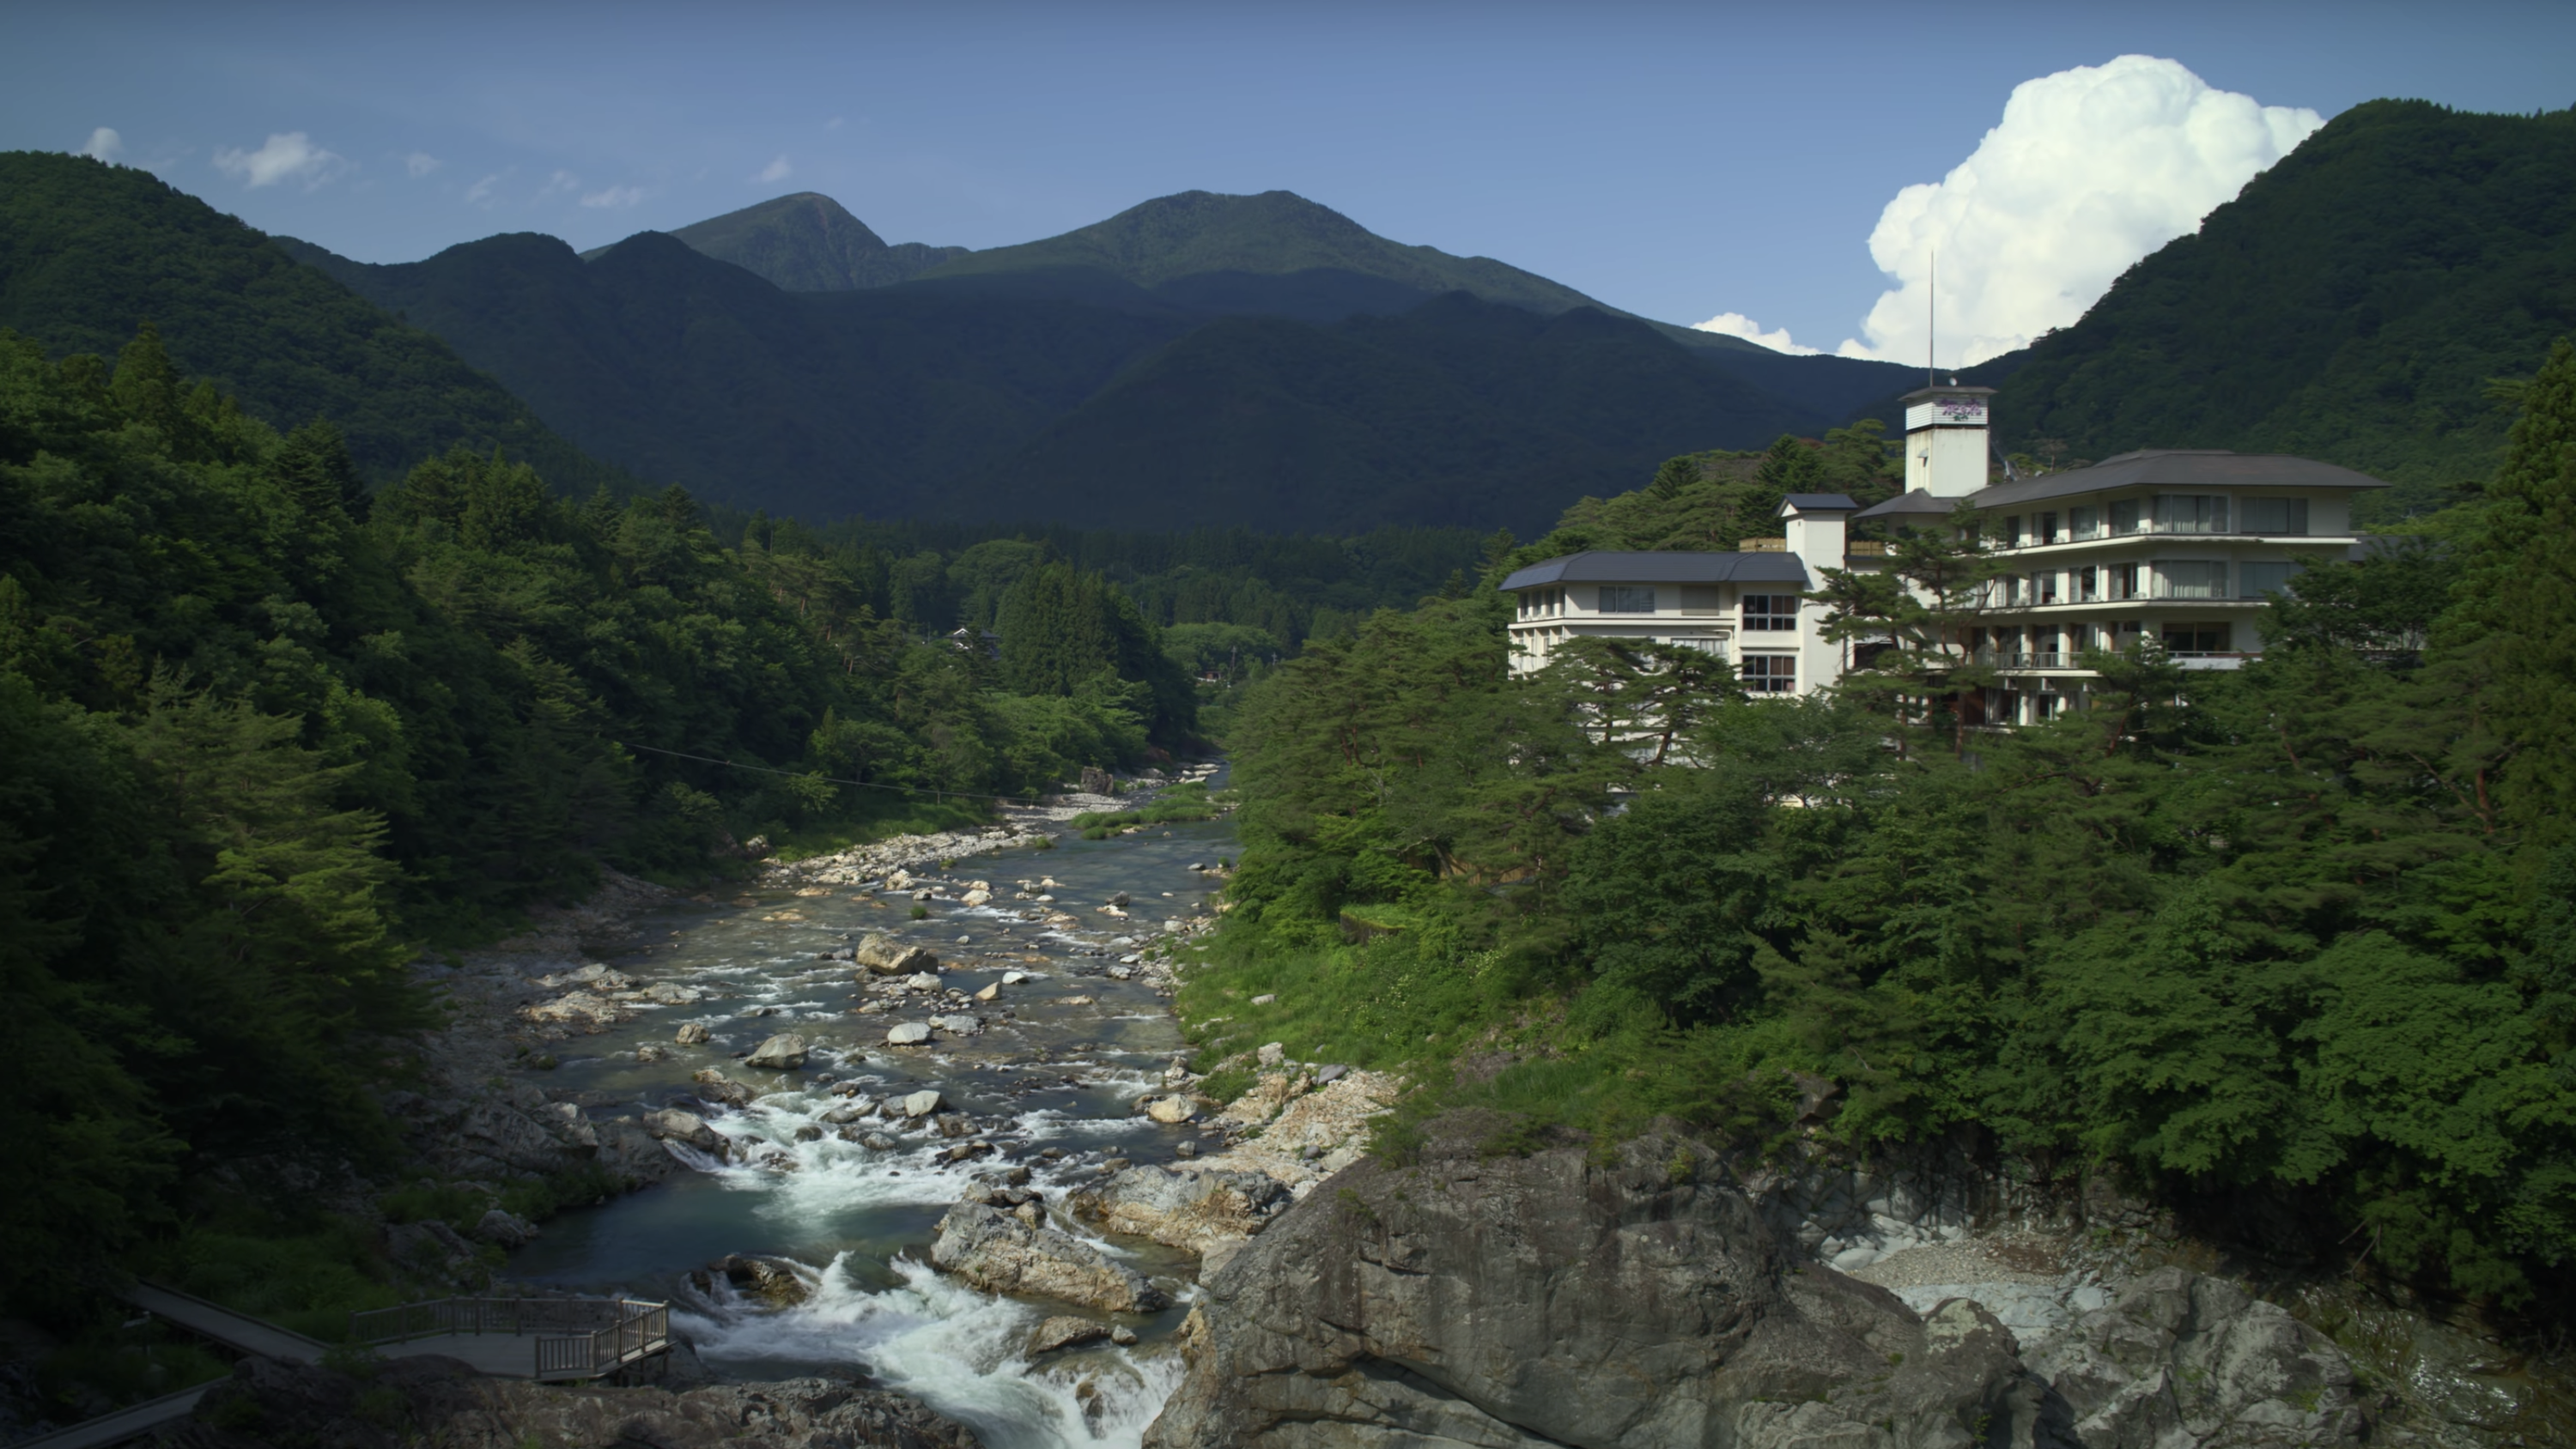 There's more to Tochigi prefecture than Nikko, as this tourism video shows